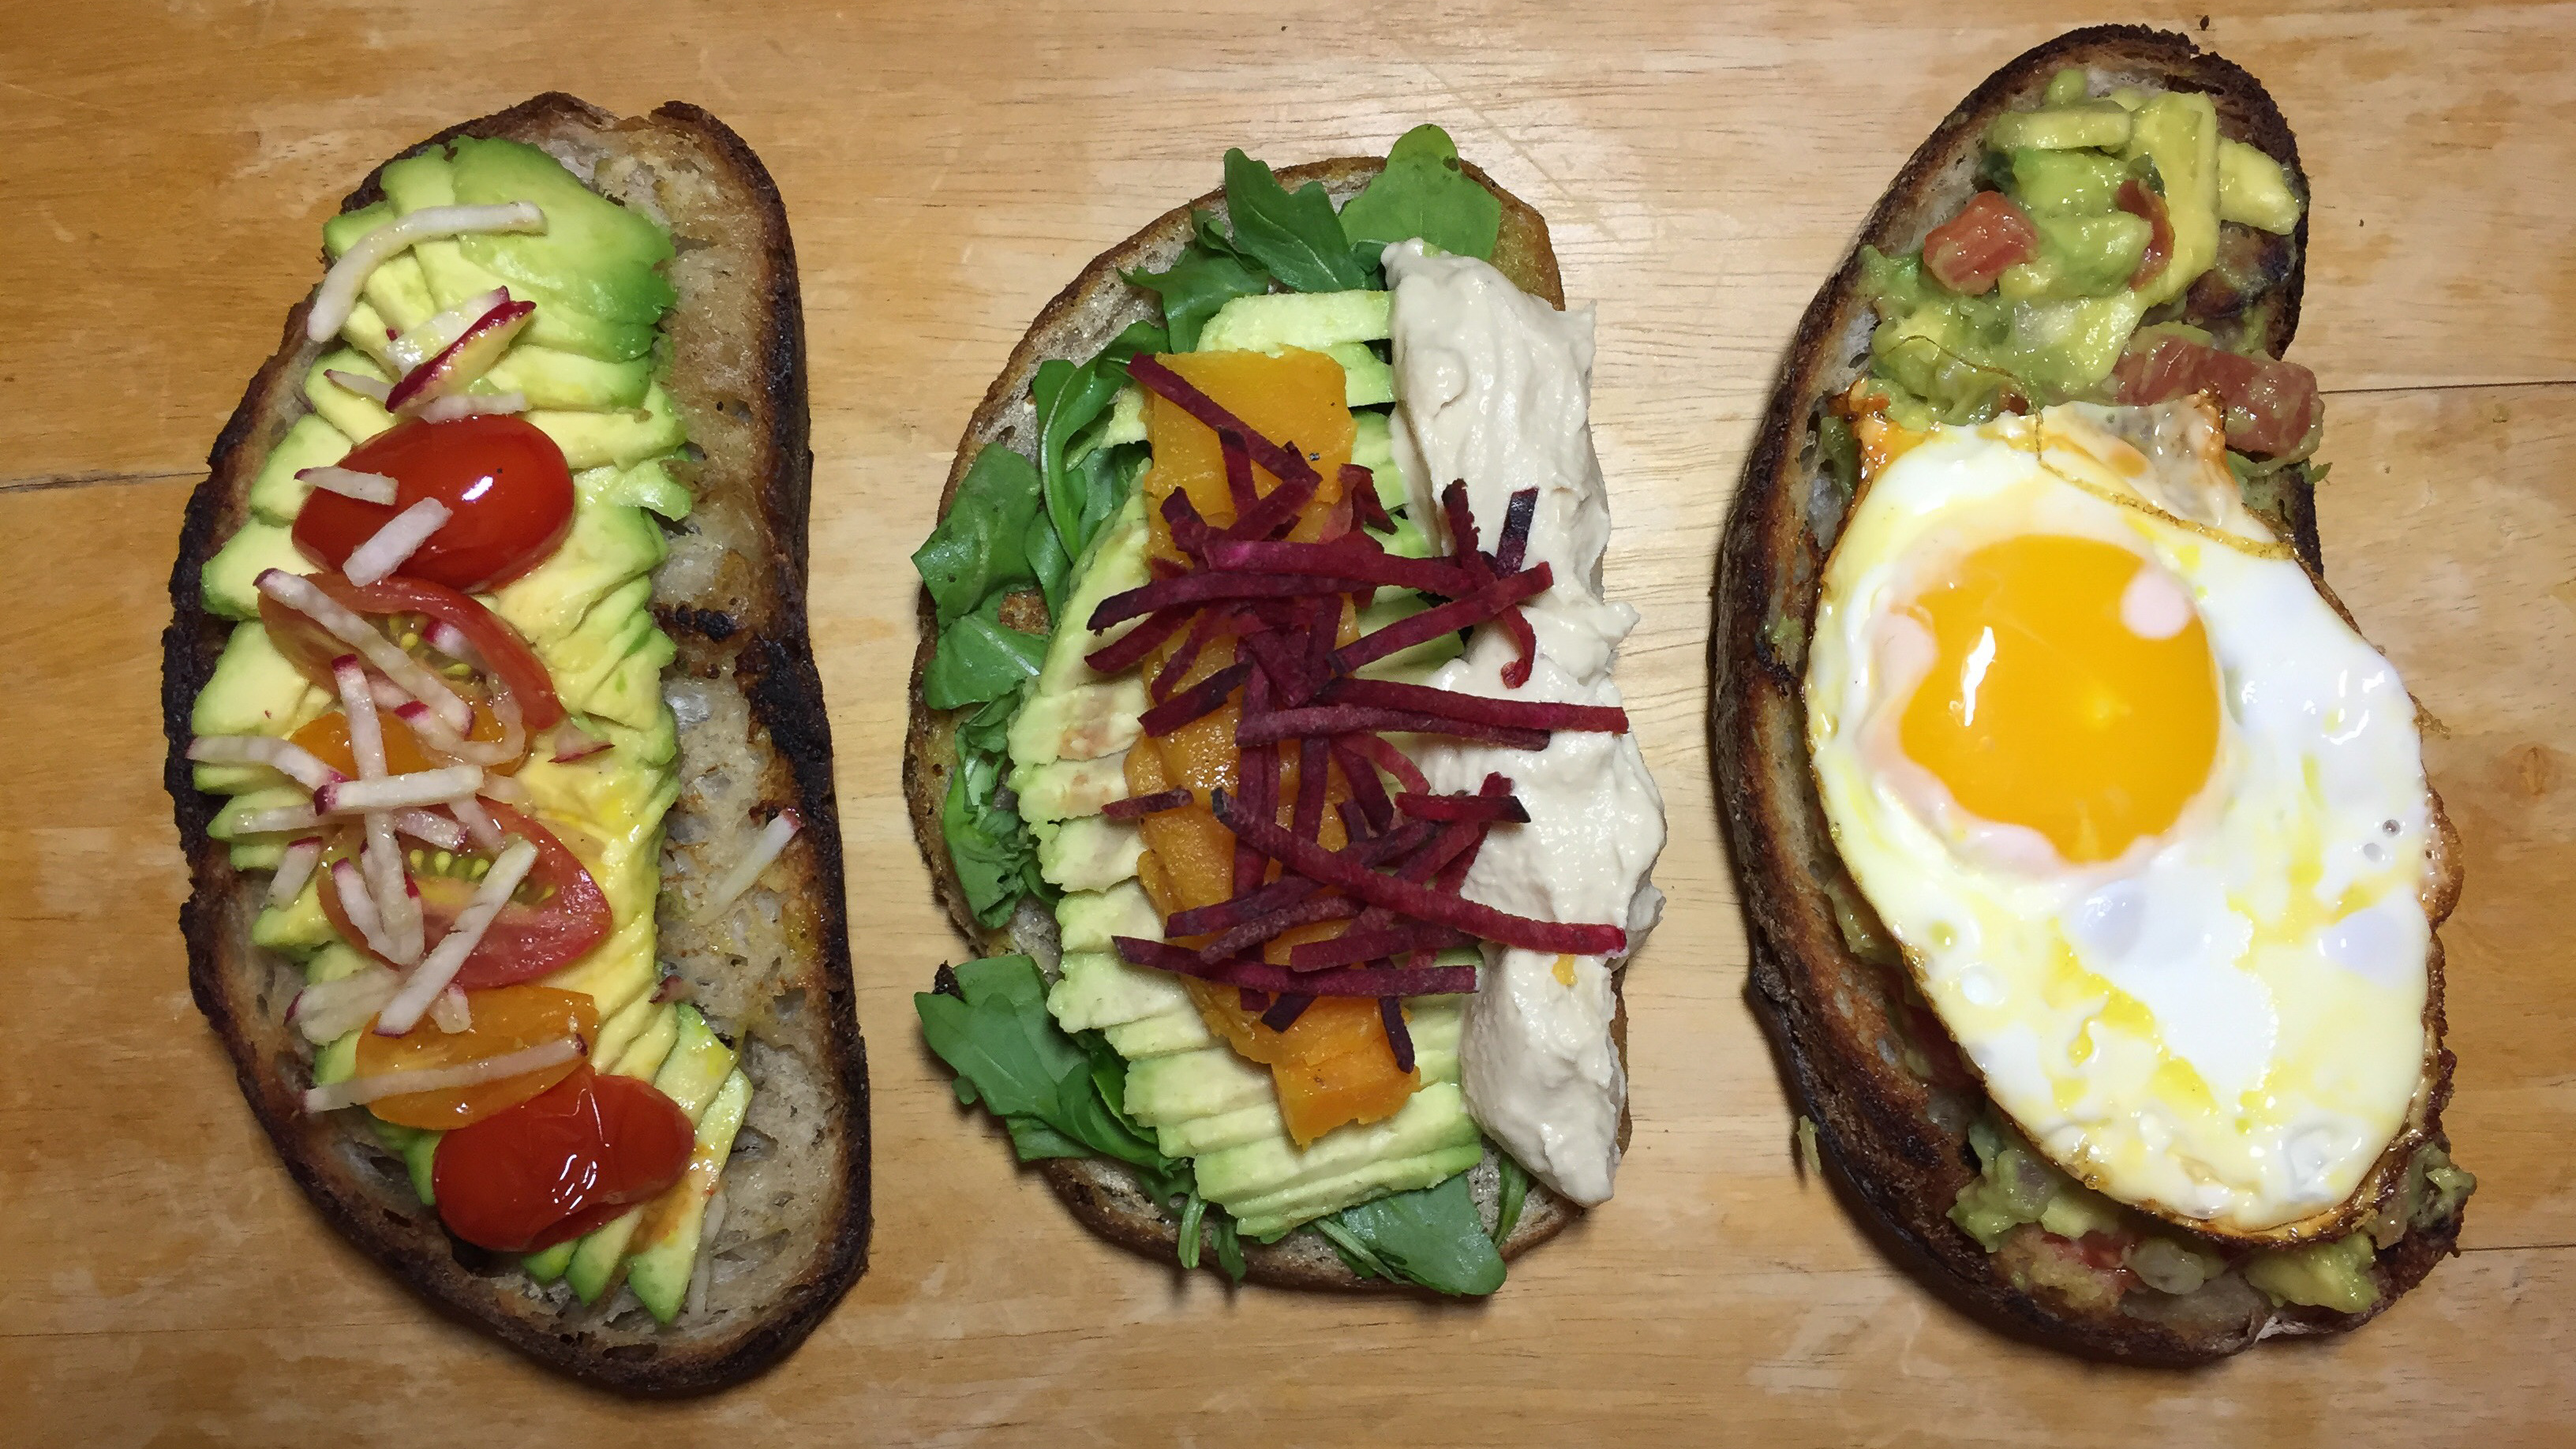 Three slices of bread side by side come topped with avocado and other ingredients, including tomatoes, beets, and a sunny-side egg